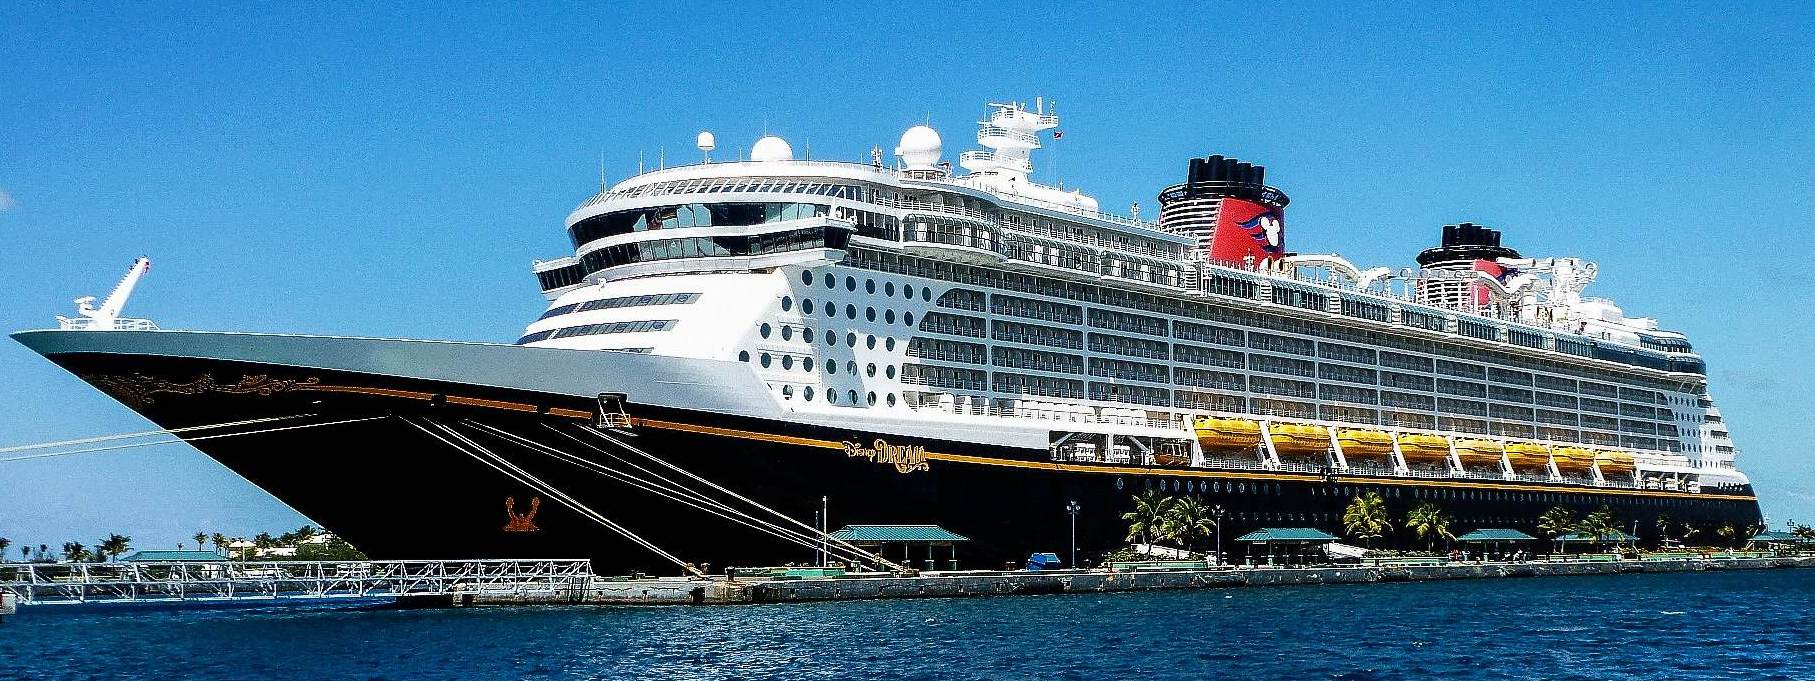 Disney Dream takes top spot in annual cruise awards